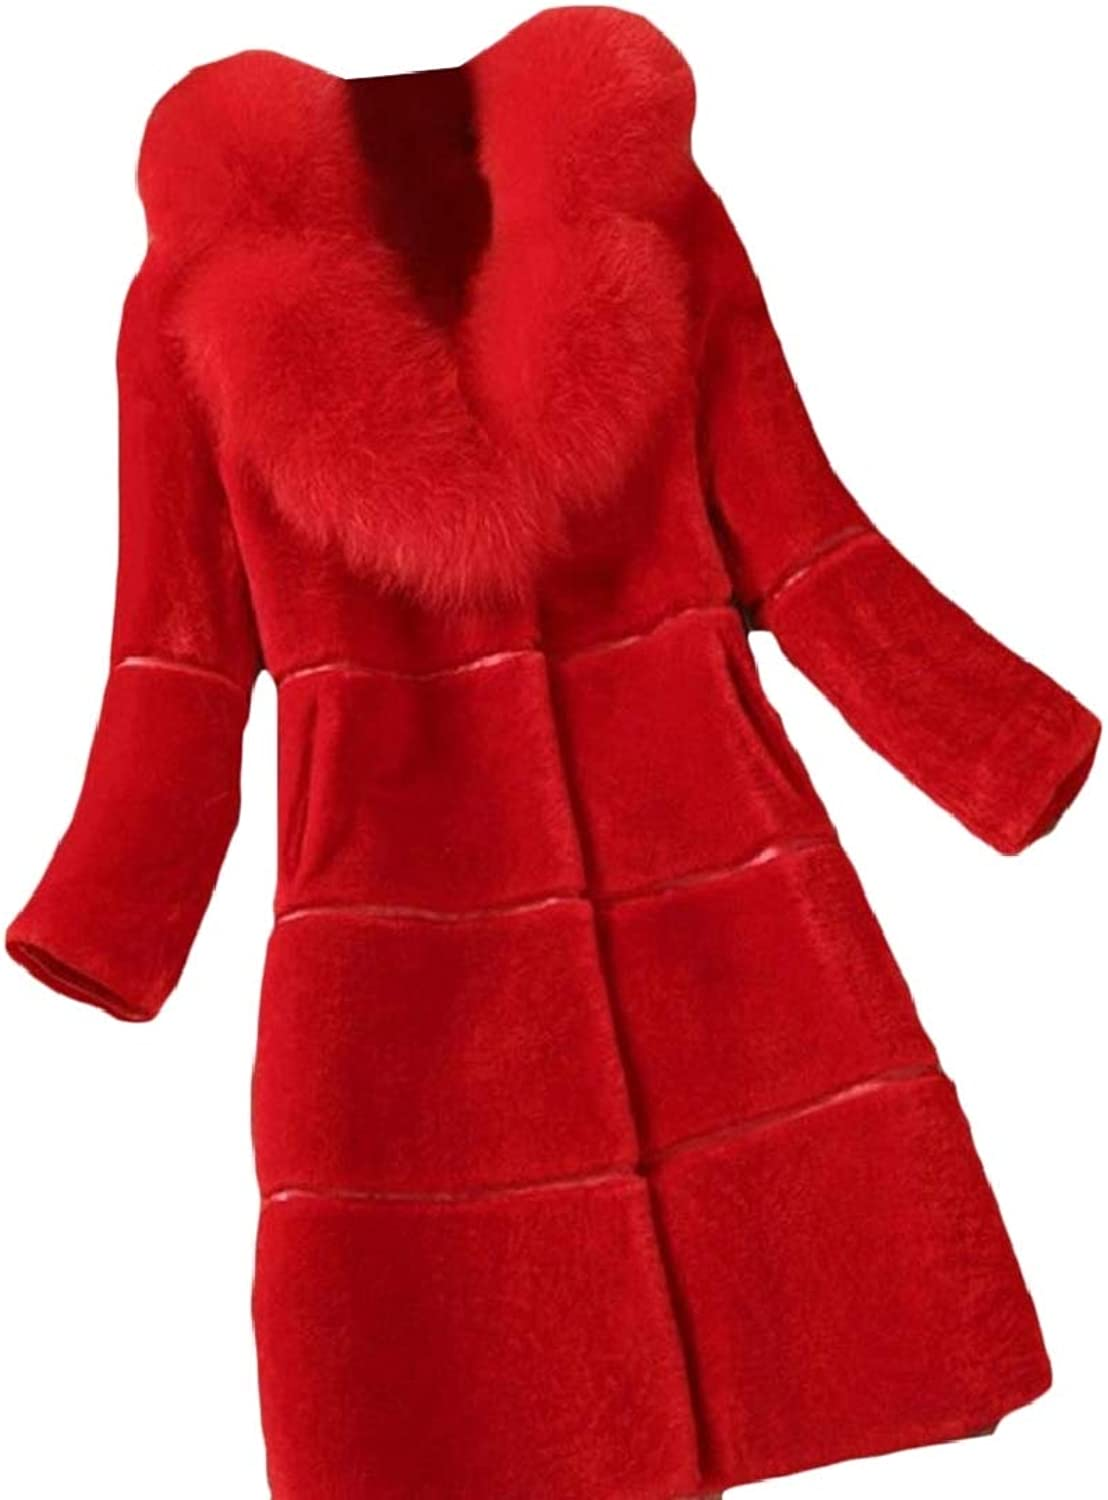 QDCACA Womens Faux Fur Coat Parka Jacket Long Trench Thicken Outerwear Overcoat